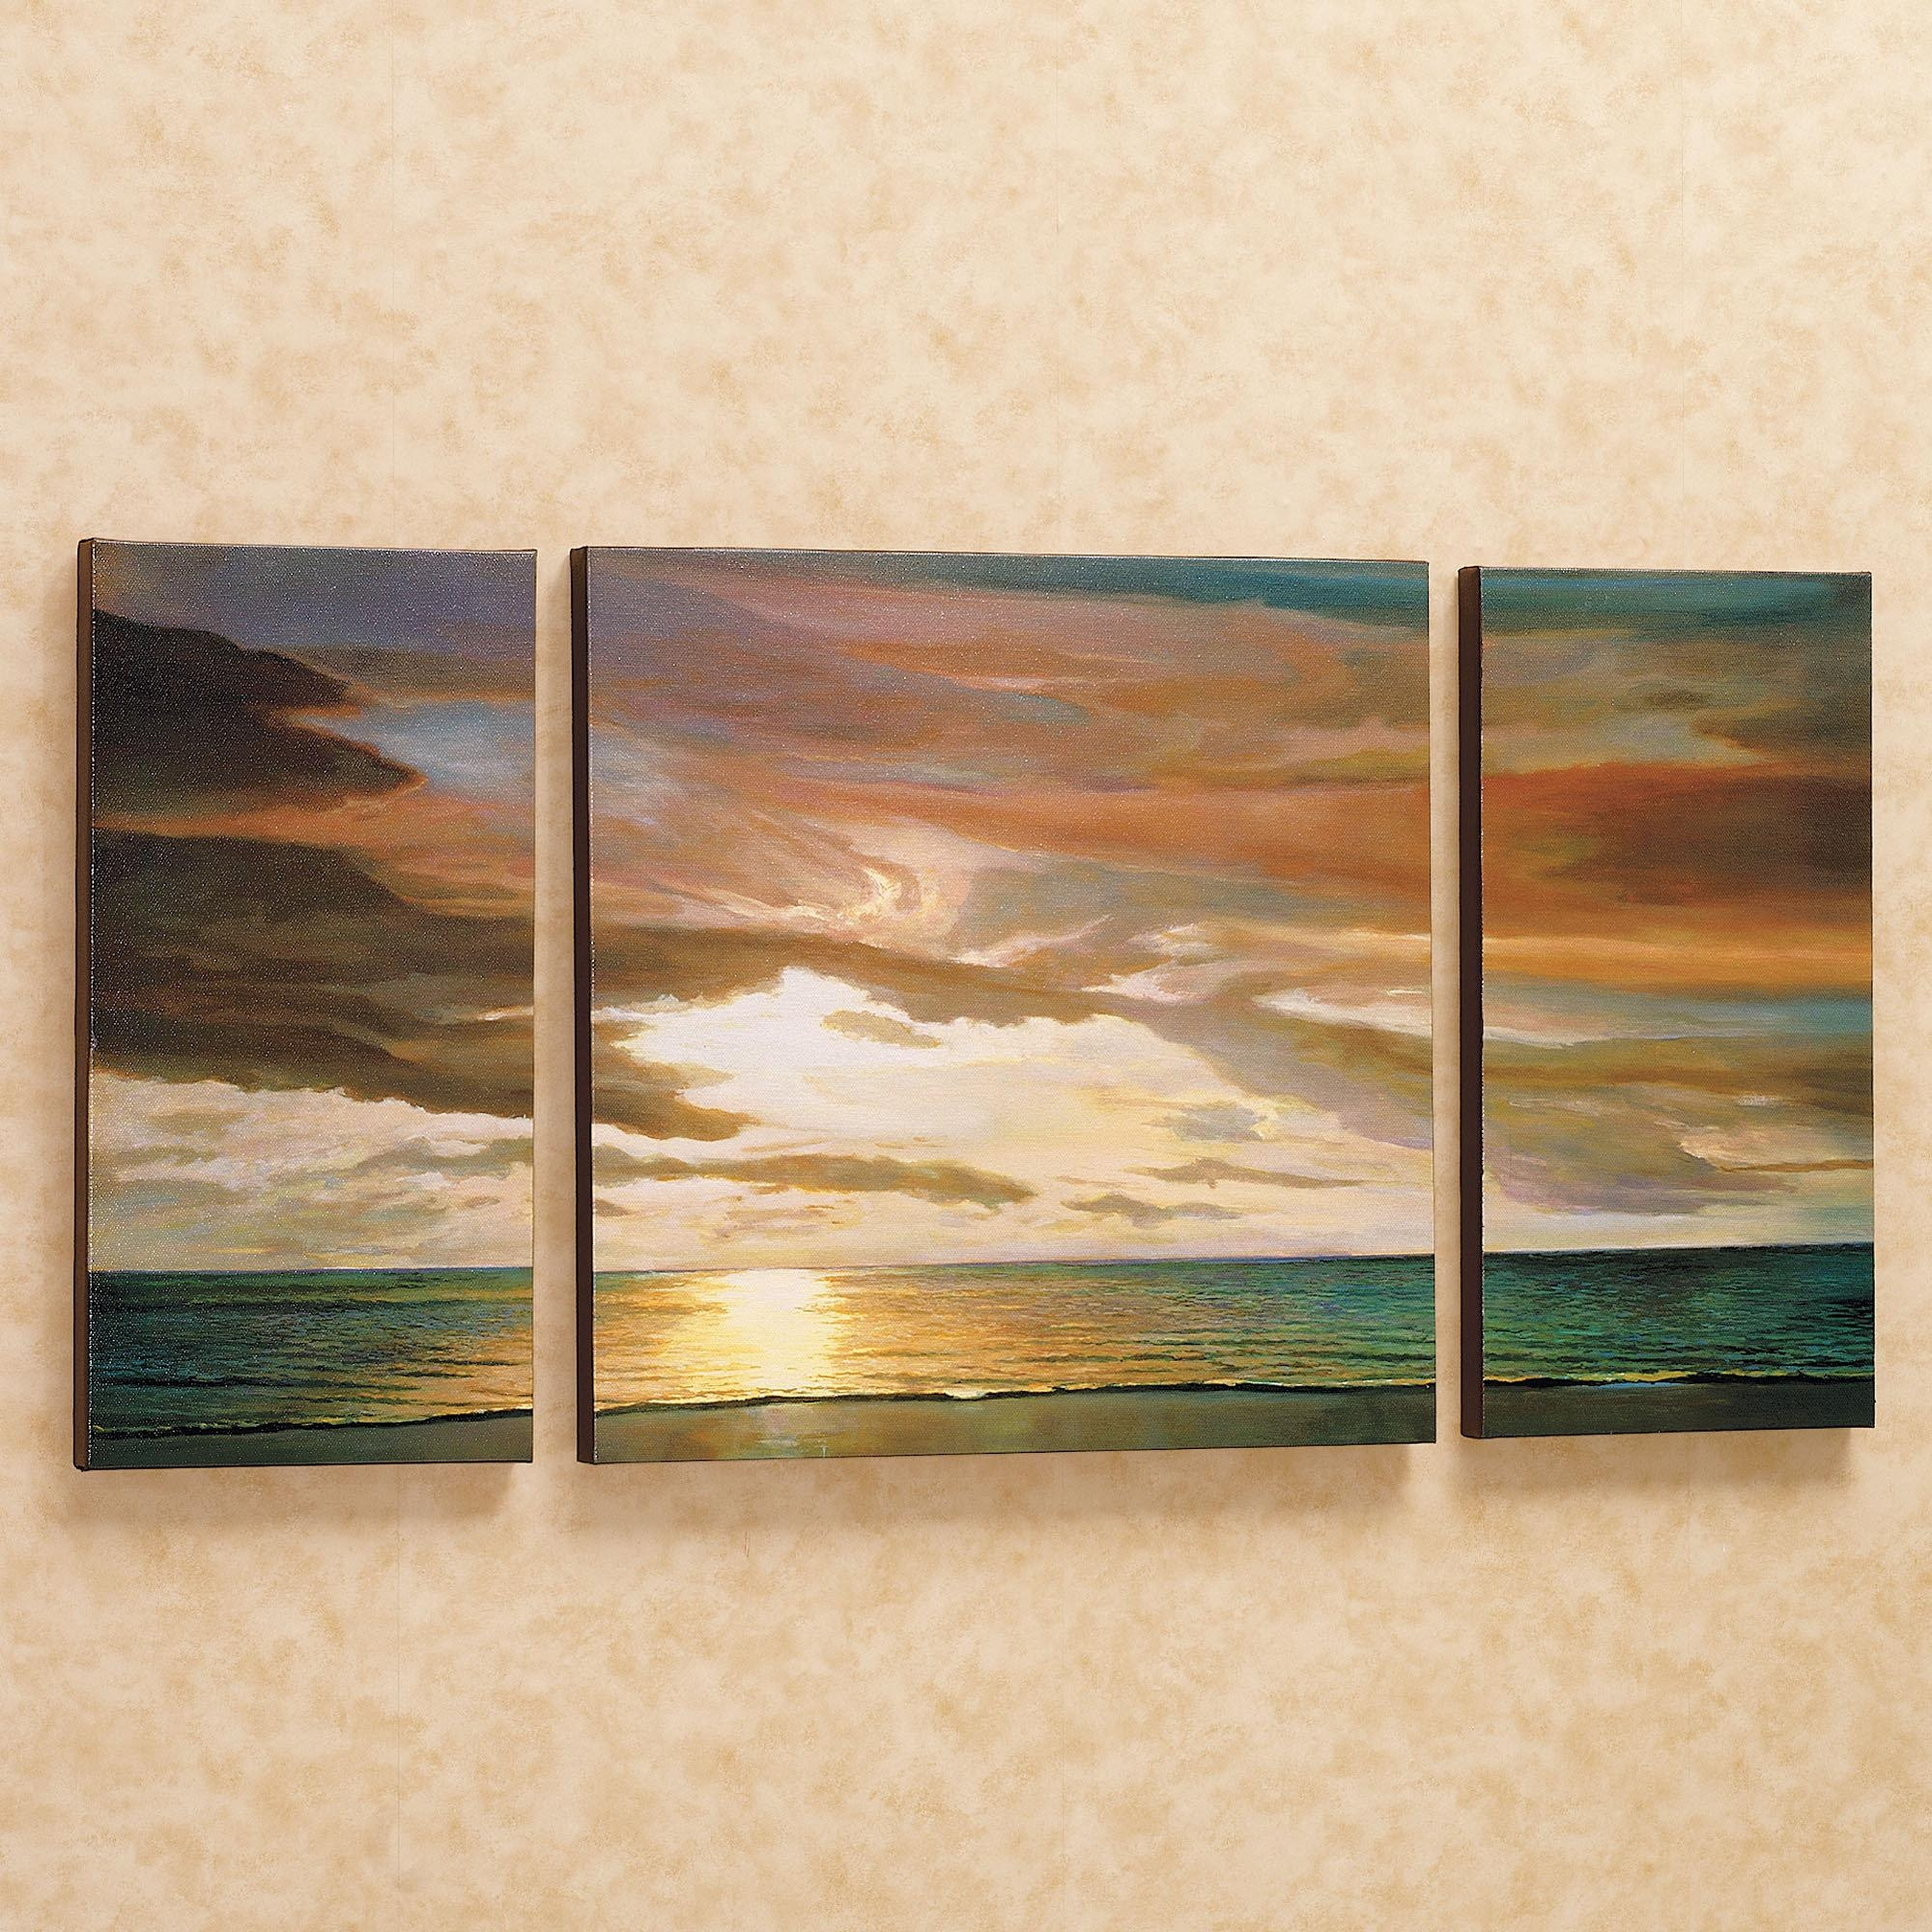 Wall Art Designs: Prints Canvas Triptych Wall Art Sale Large Metal Pertaining To Large Triptych Wall Art (Image 17 of 20)